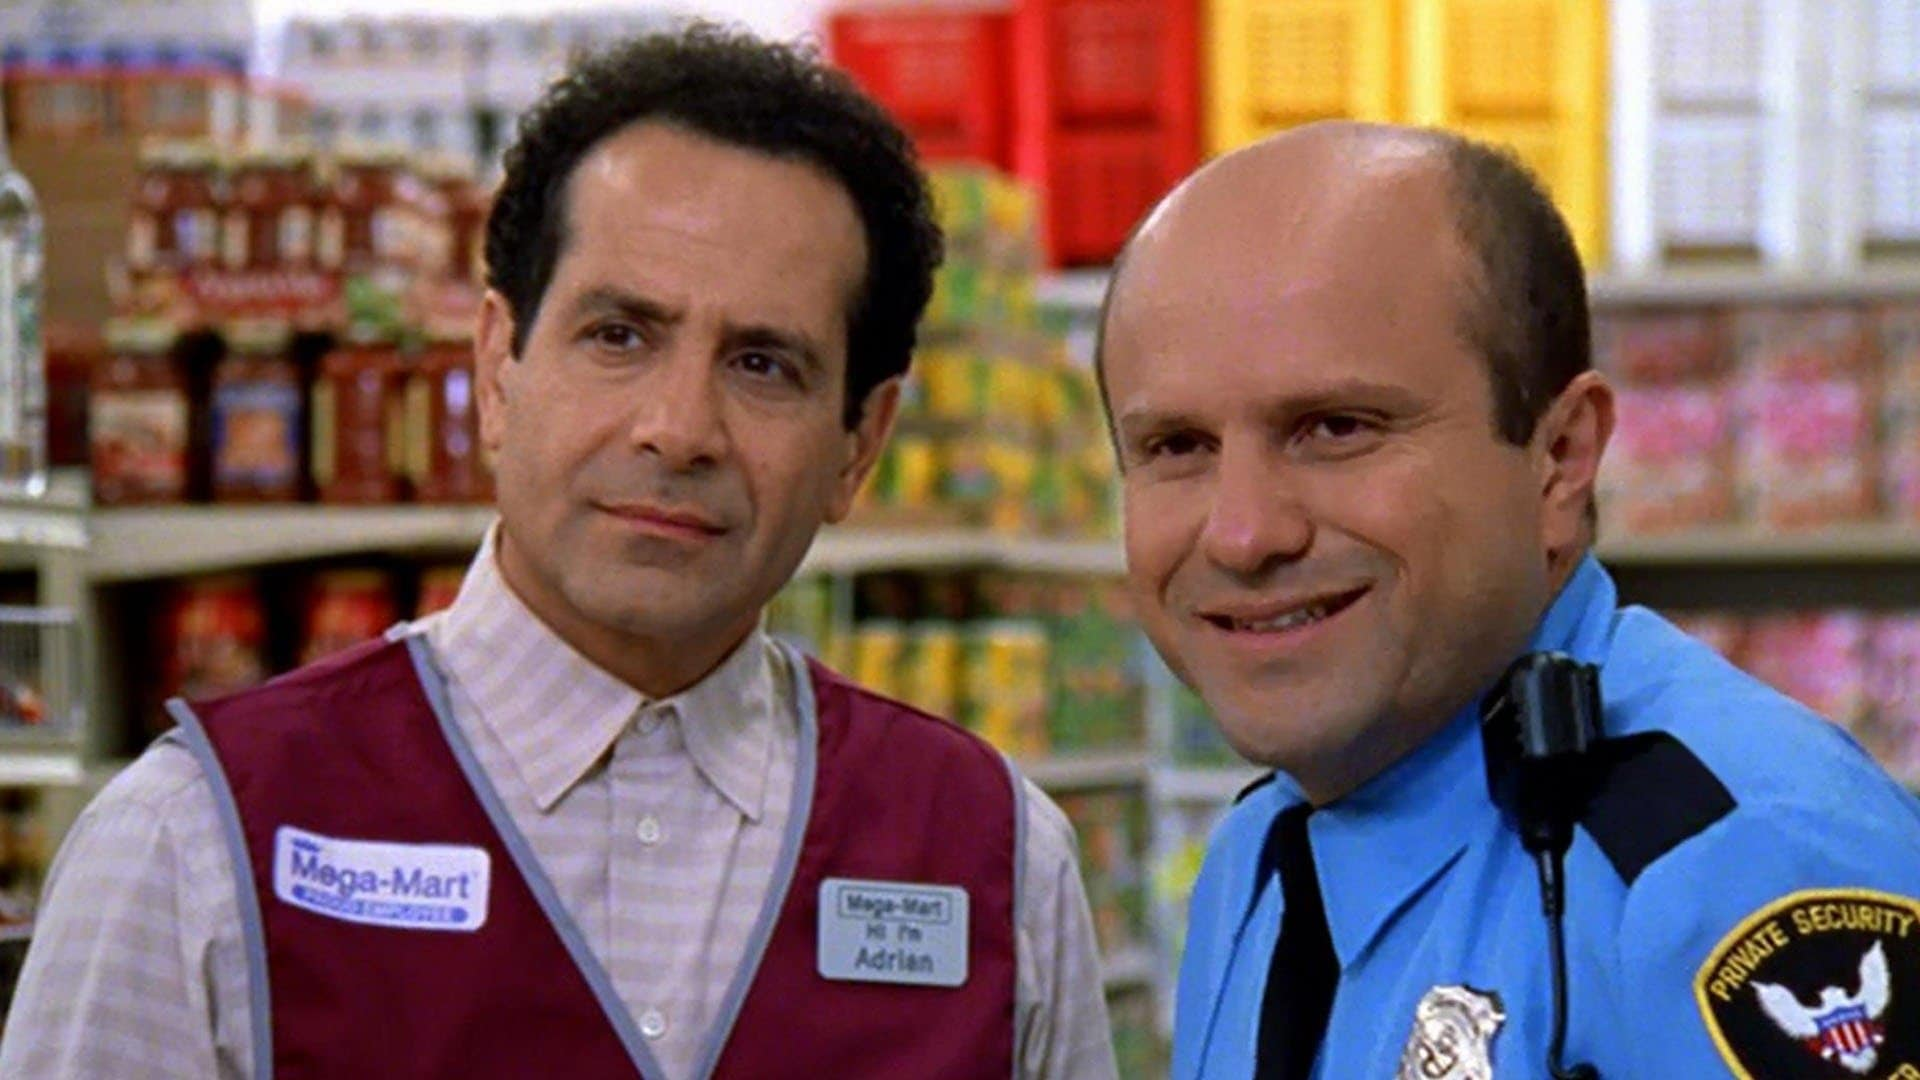 Mr. Monk and the Employee of the Month